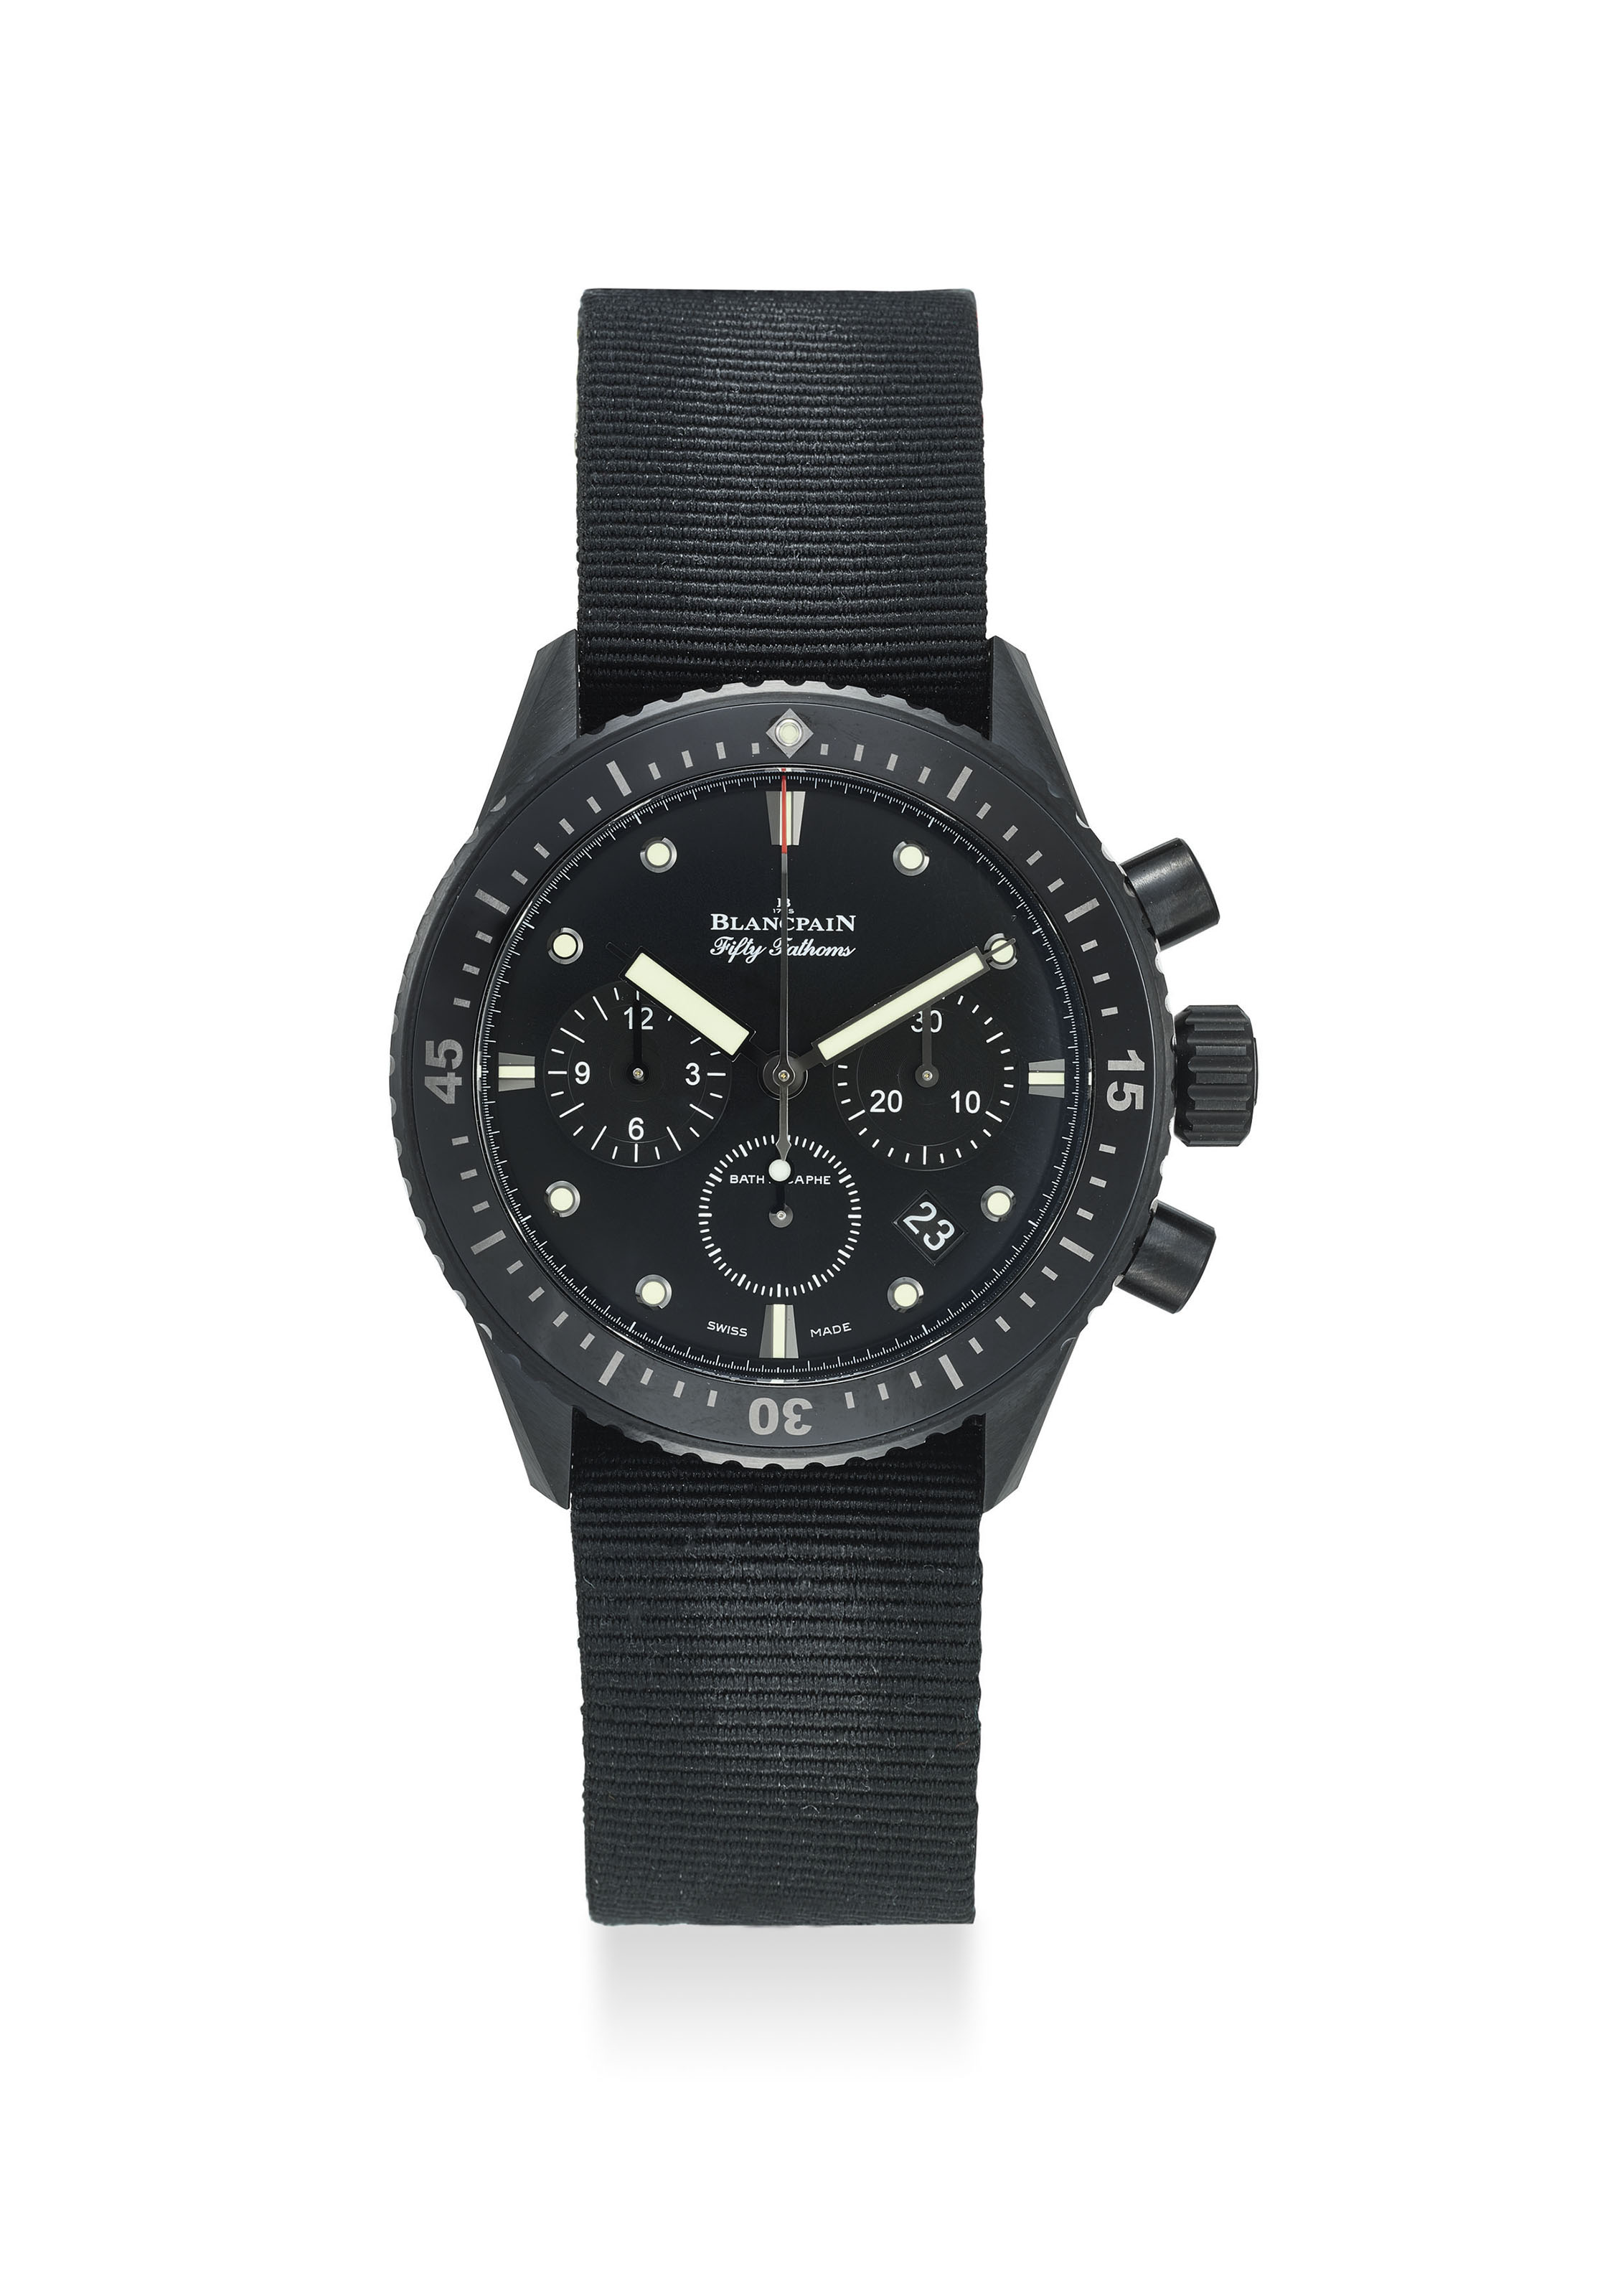 BLANCPAIN AN EXTREMELY FIN